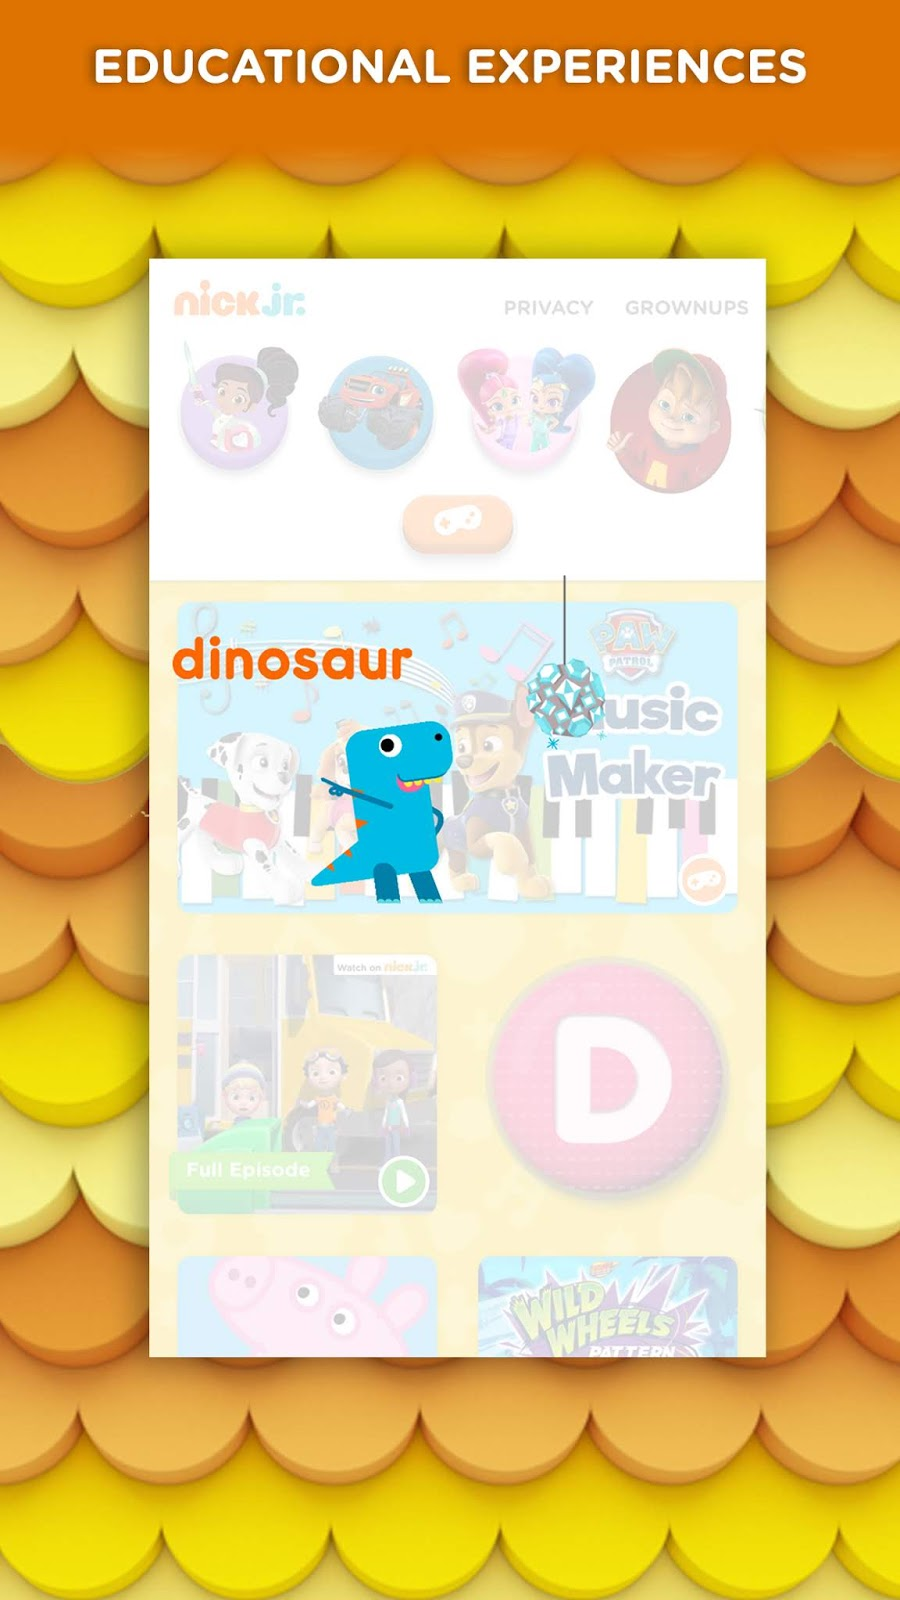 NickALive!: Nickelodeon Asia Launches Nick Jr. Play App in Singapore